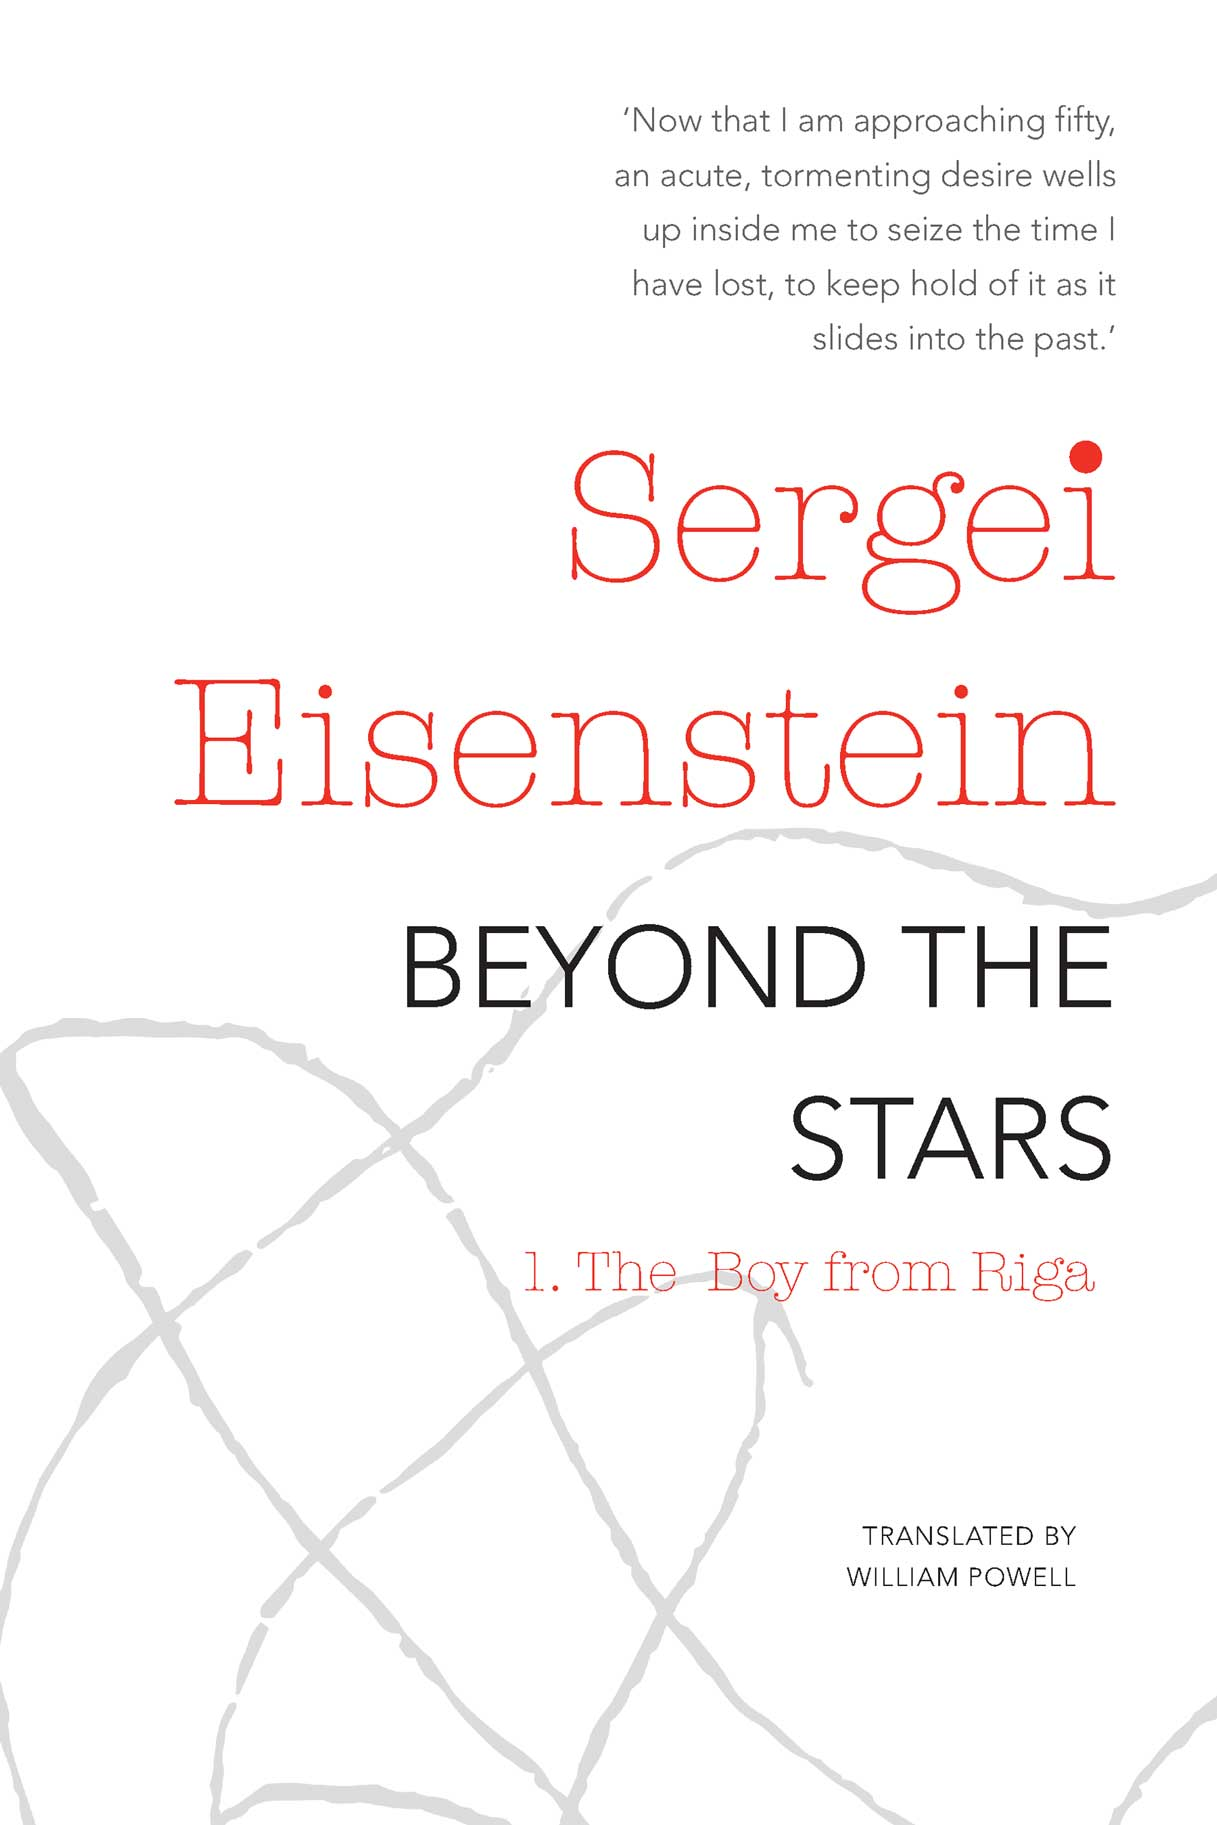 Beyond the Stars, Part 1 by SERGEI EISENSTEIN | Seagull Books